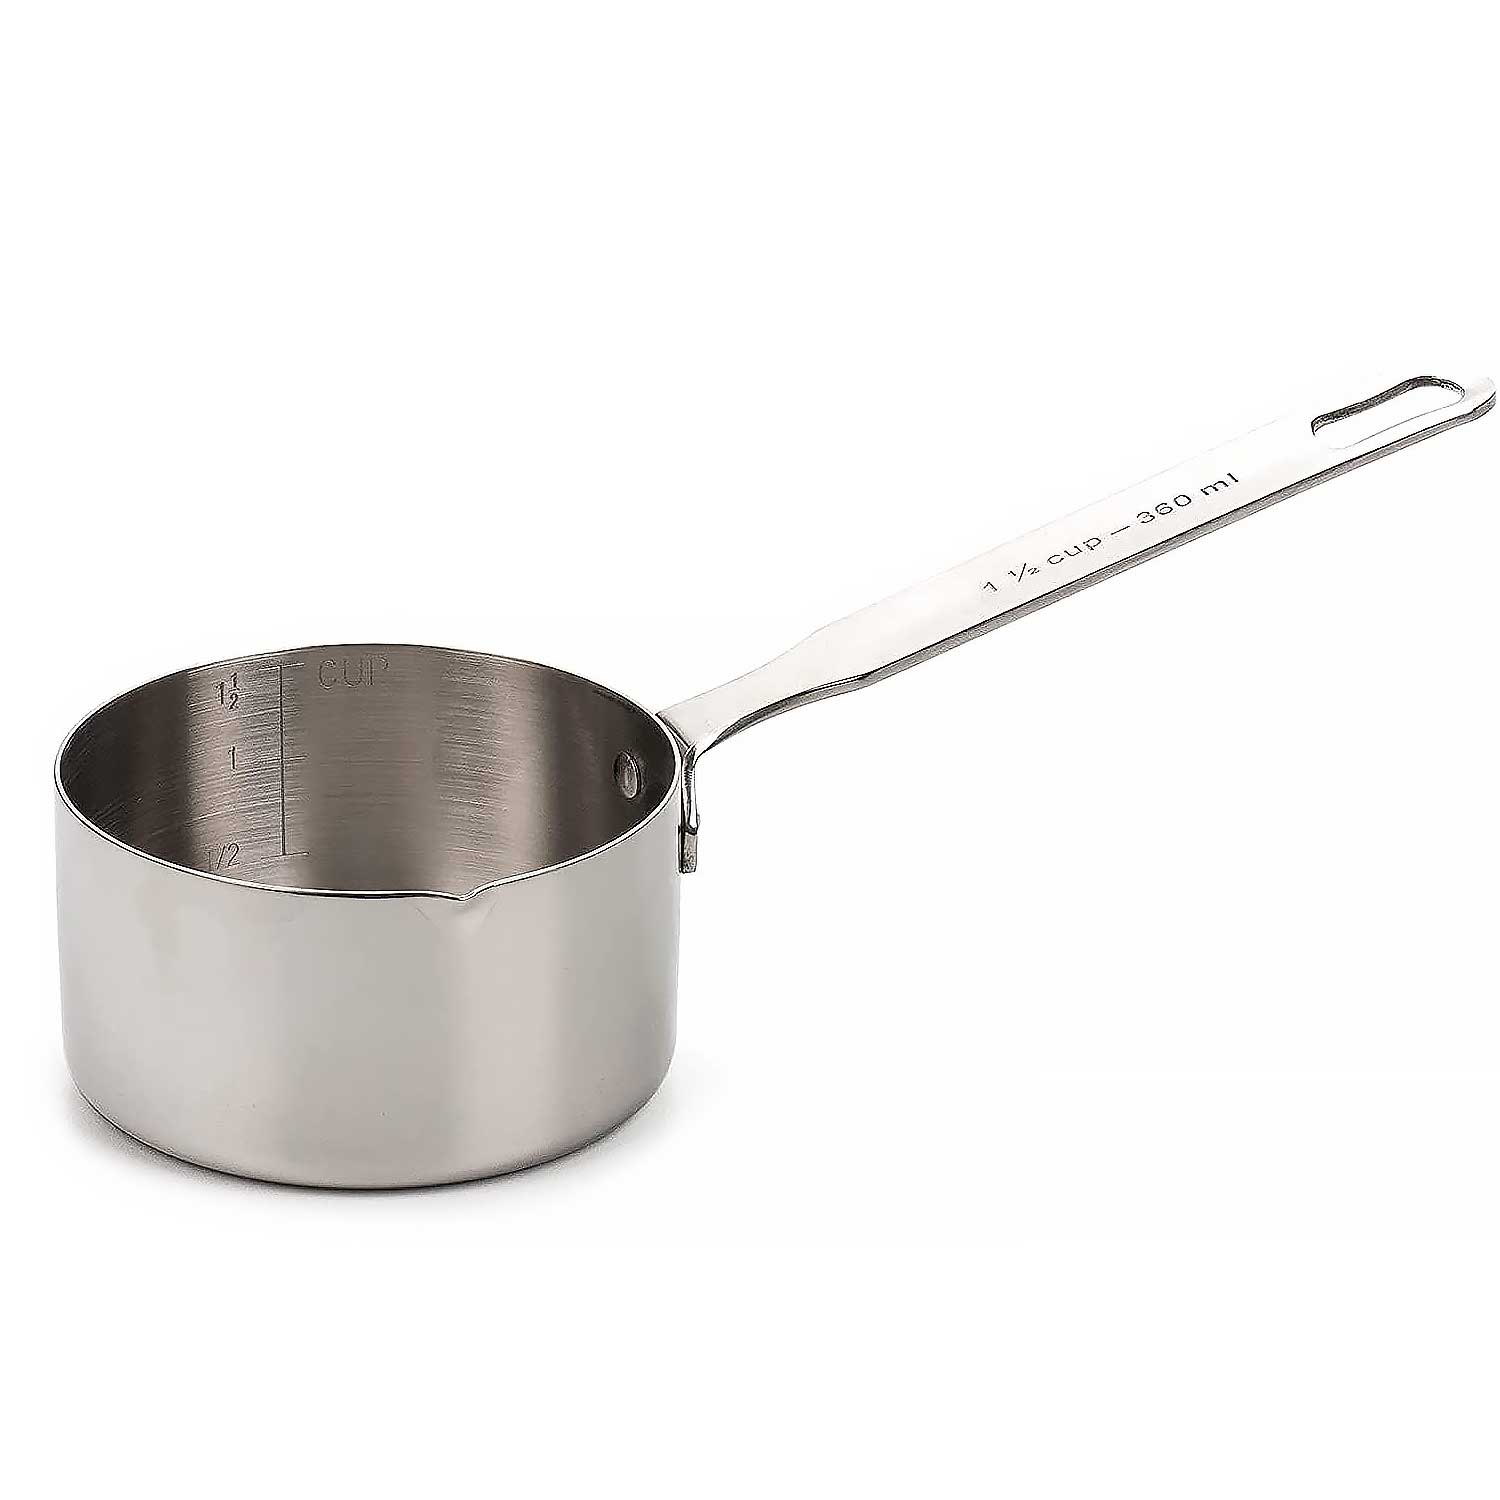 2 Cup Measuring Pan